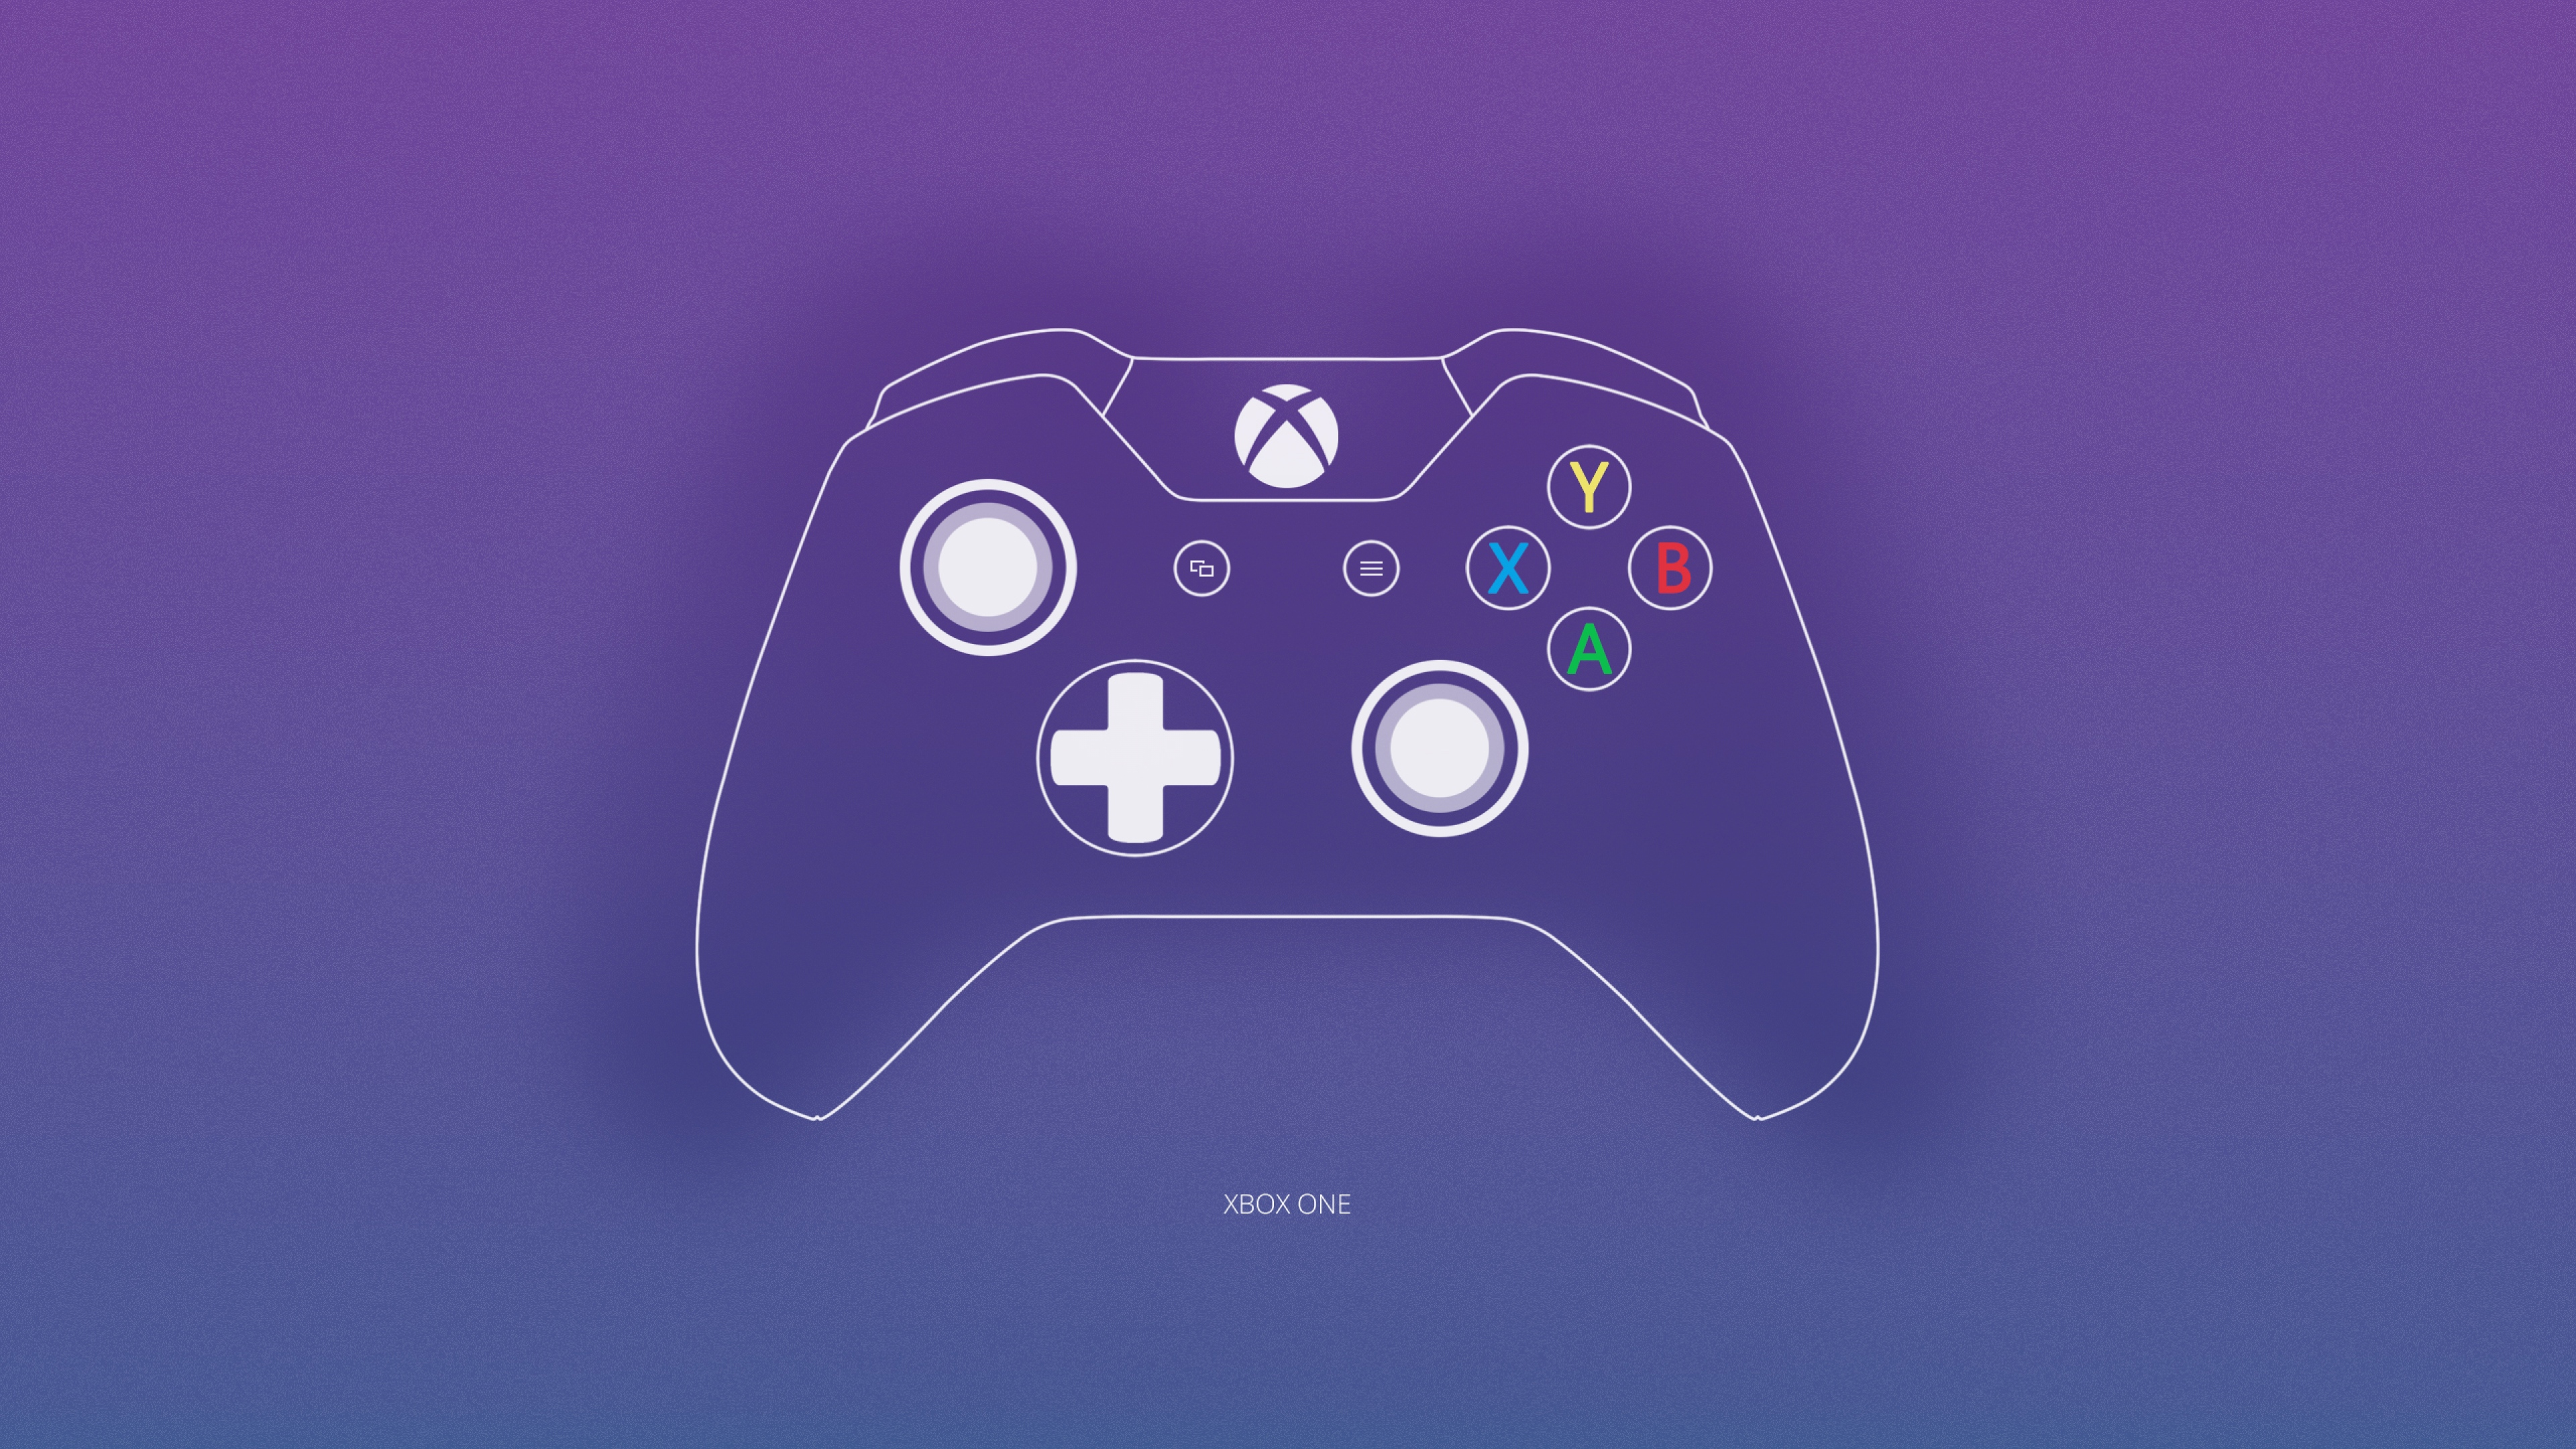 Xbox One Wallpapers HD 3840x2160